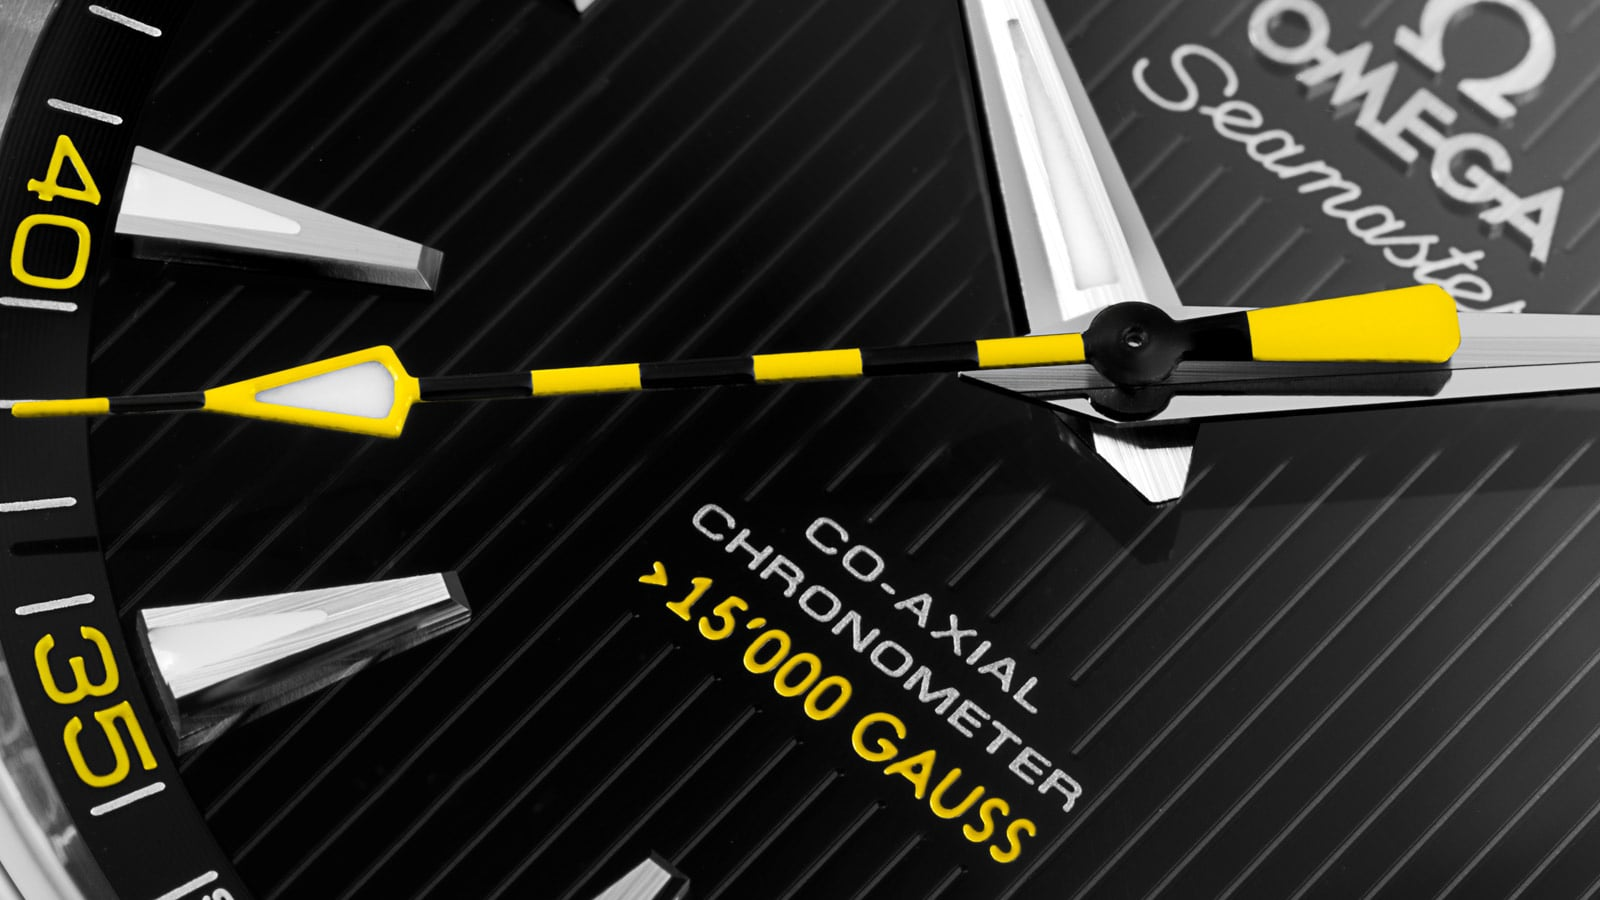 Closeup of the yellow and black striped seconds hands of the 15,000 gauss watch